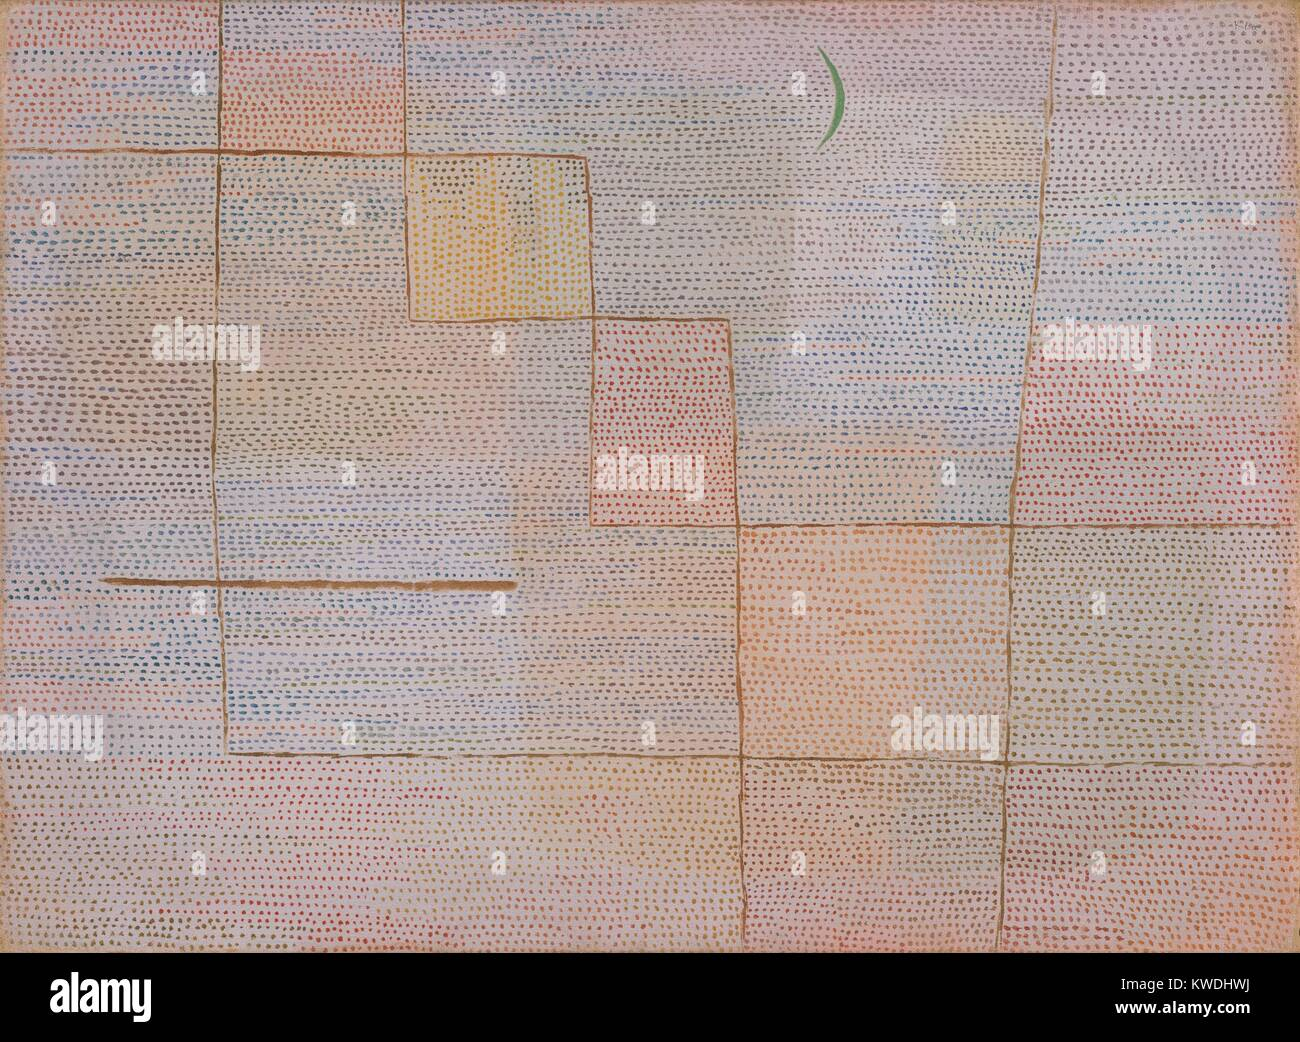 CLARIFICATION, by Paul Klee, 1932, Swiss painting, oil on canvas. Klee divided the ground into areas of buff and - Stock Image